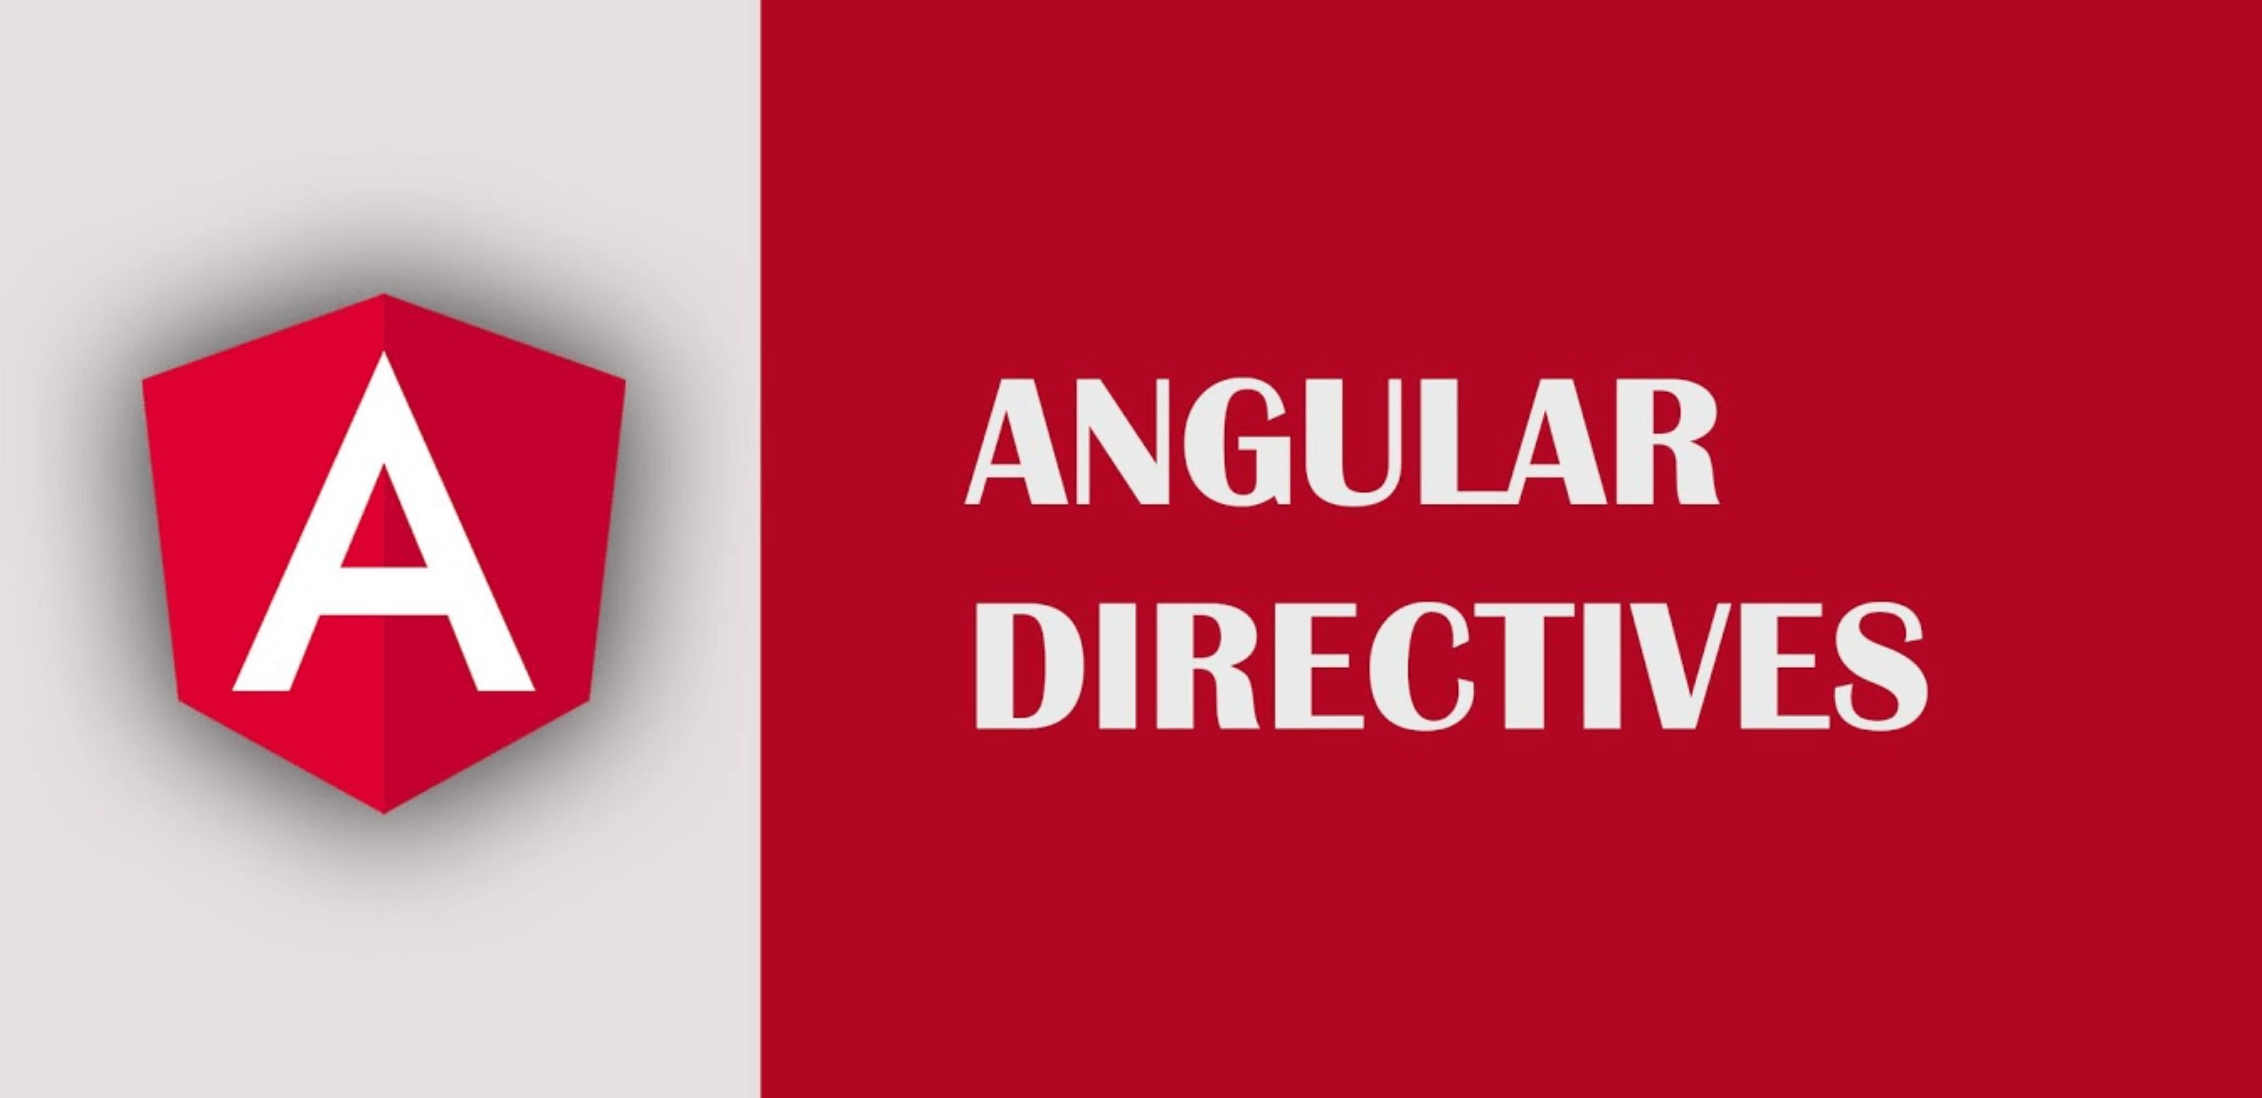 angular directives